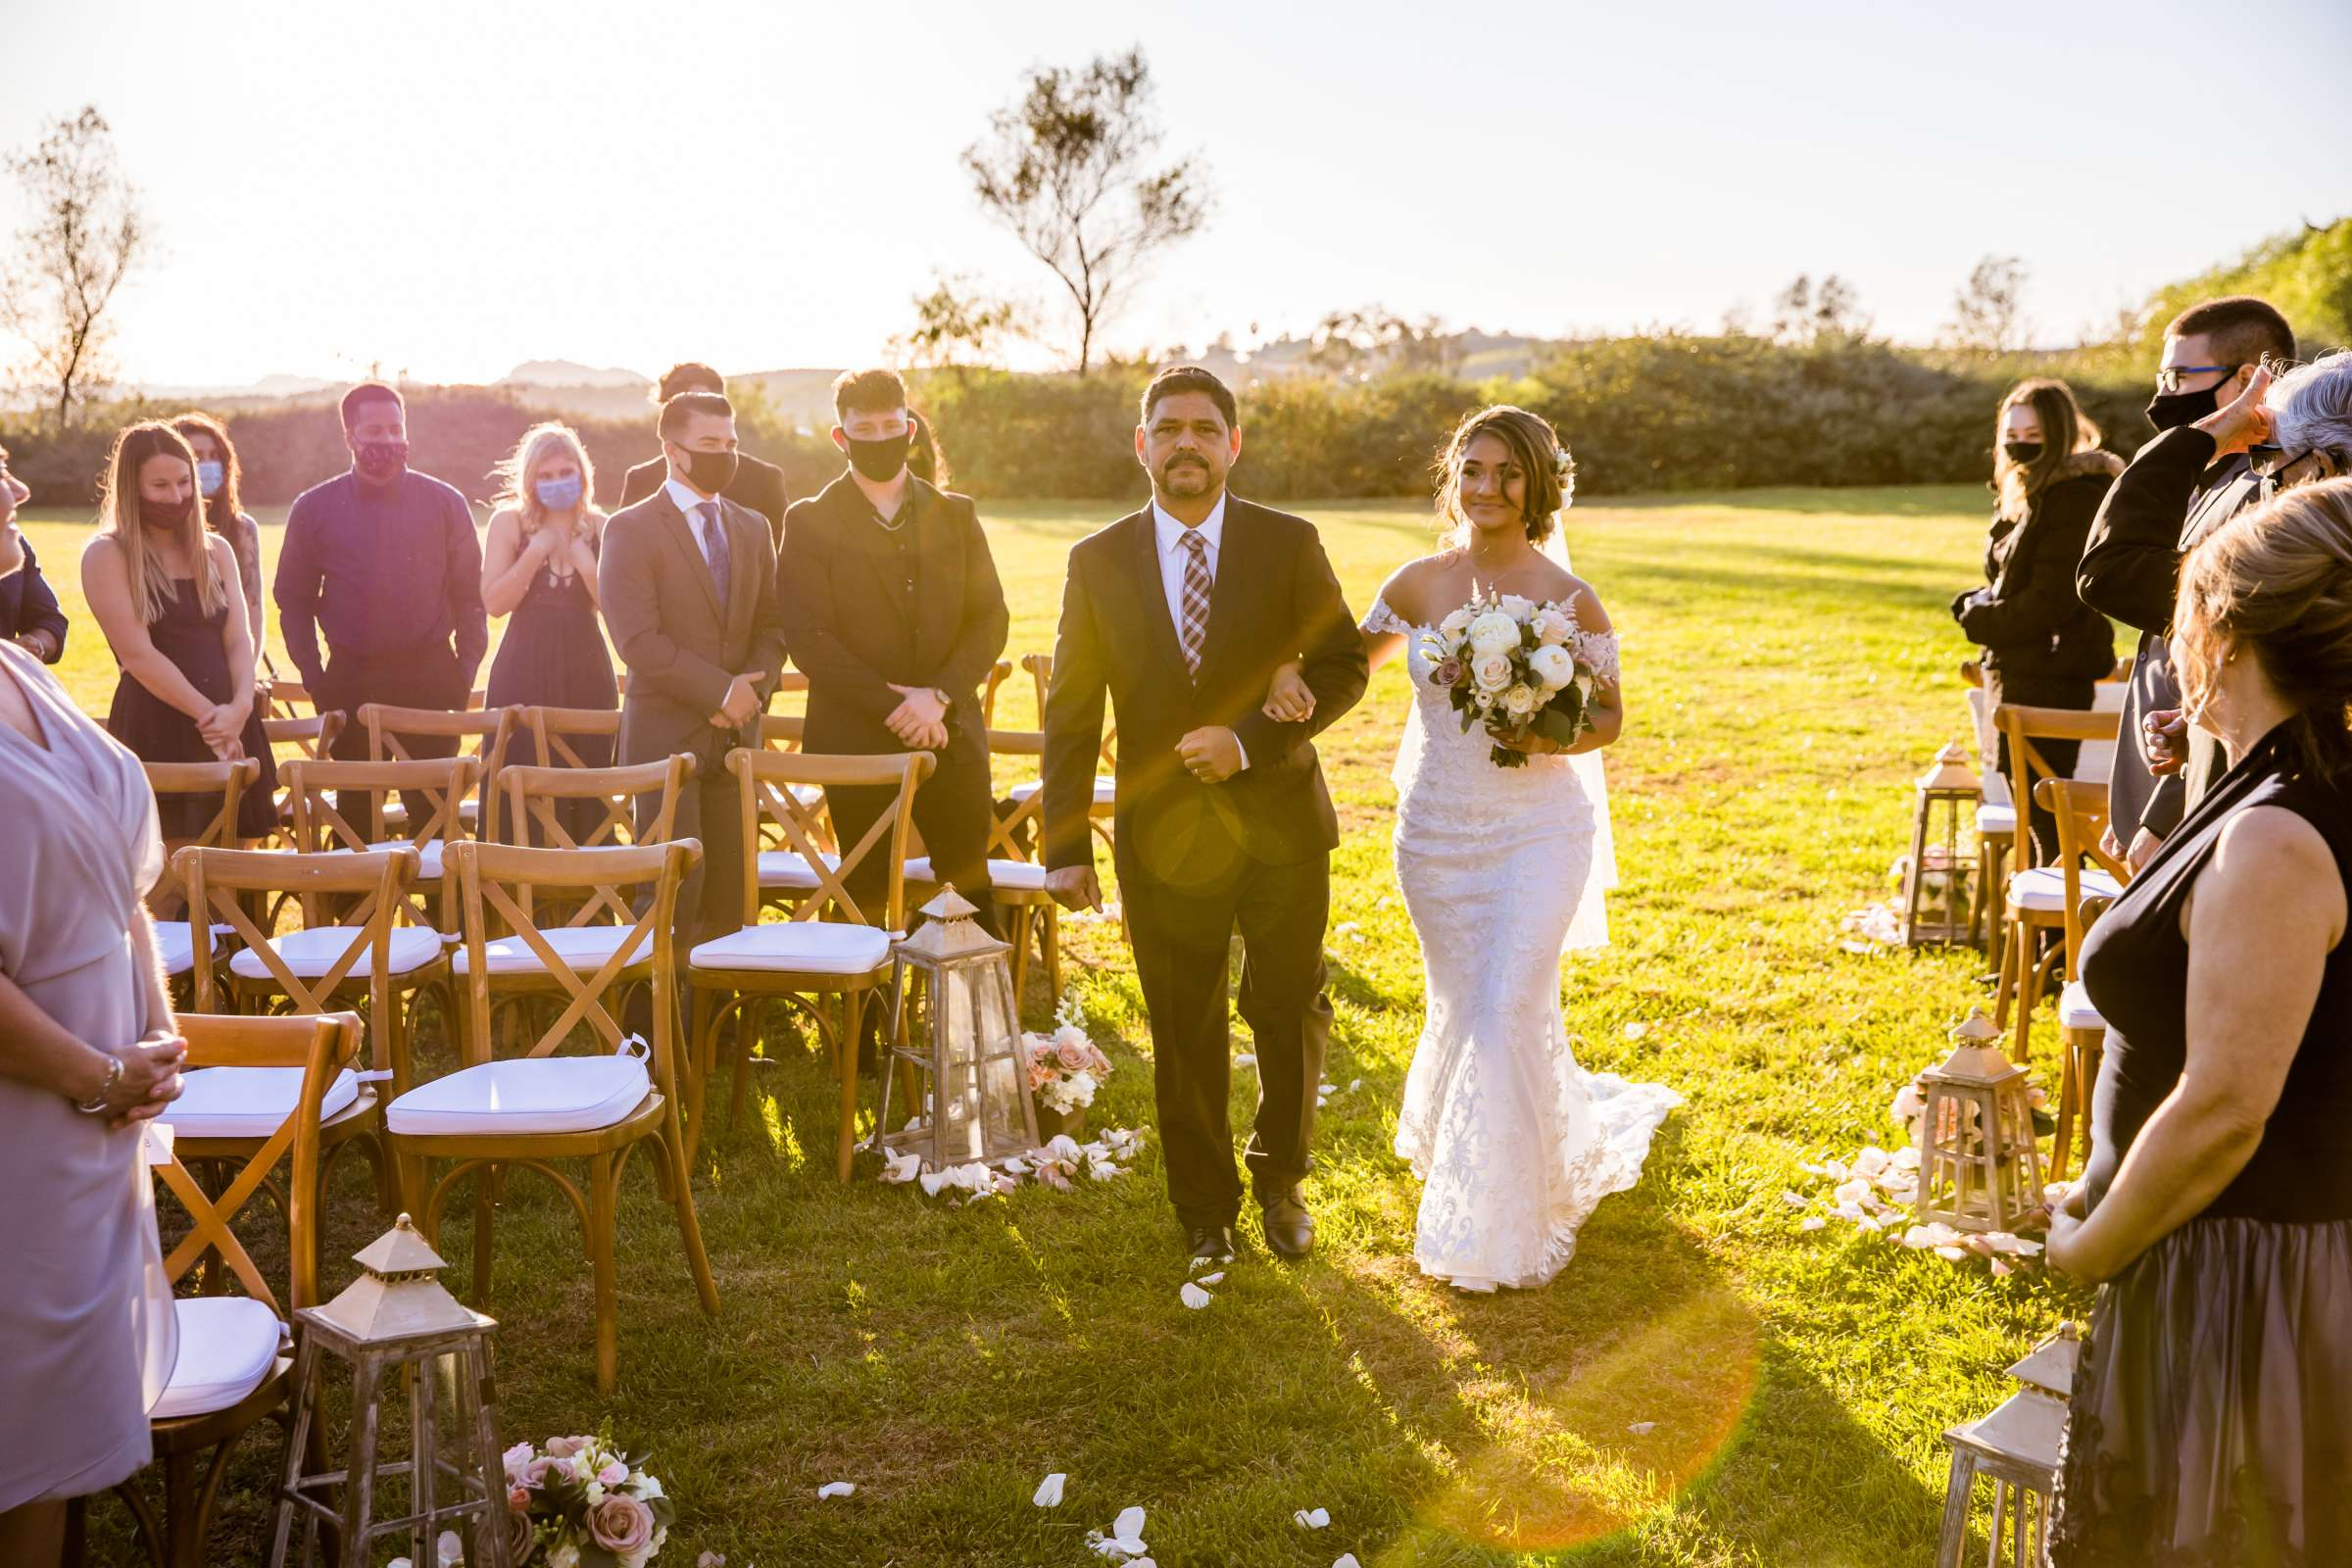 Ethereal Gardens Wedding, Danielle and Ben Wedding Photo #21 by True Photography